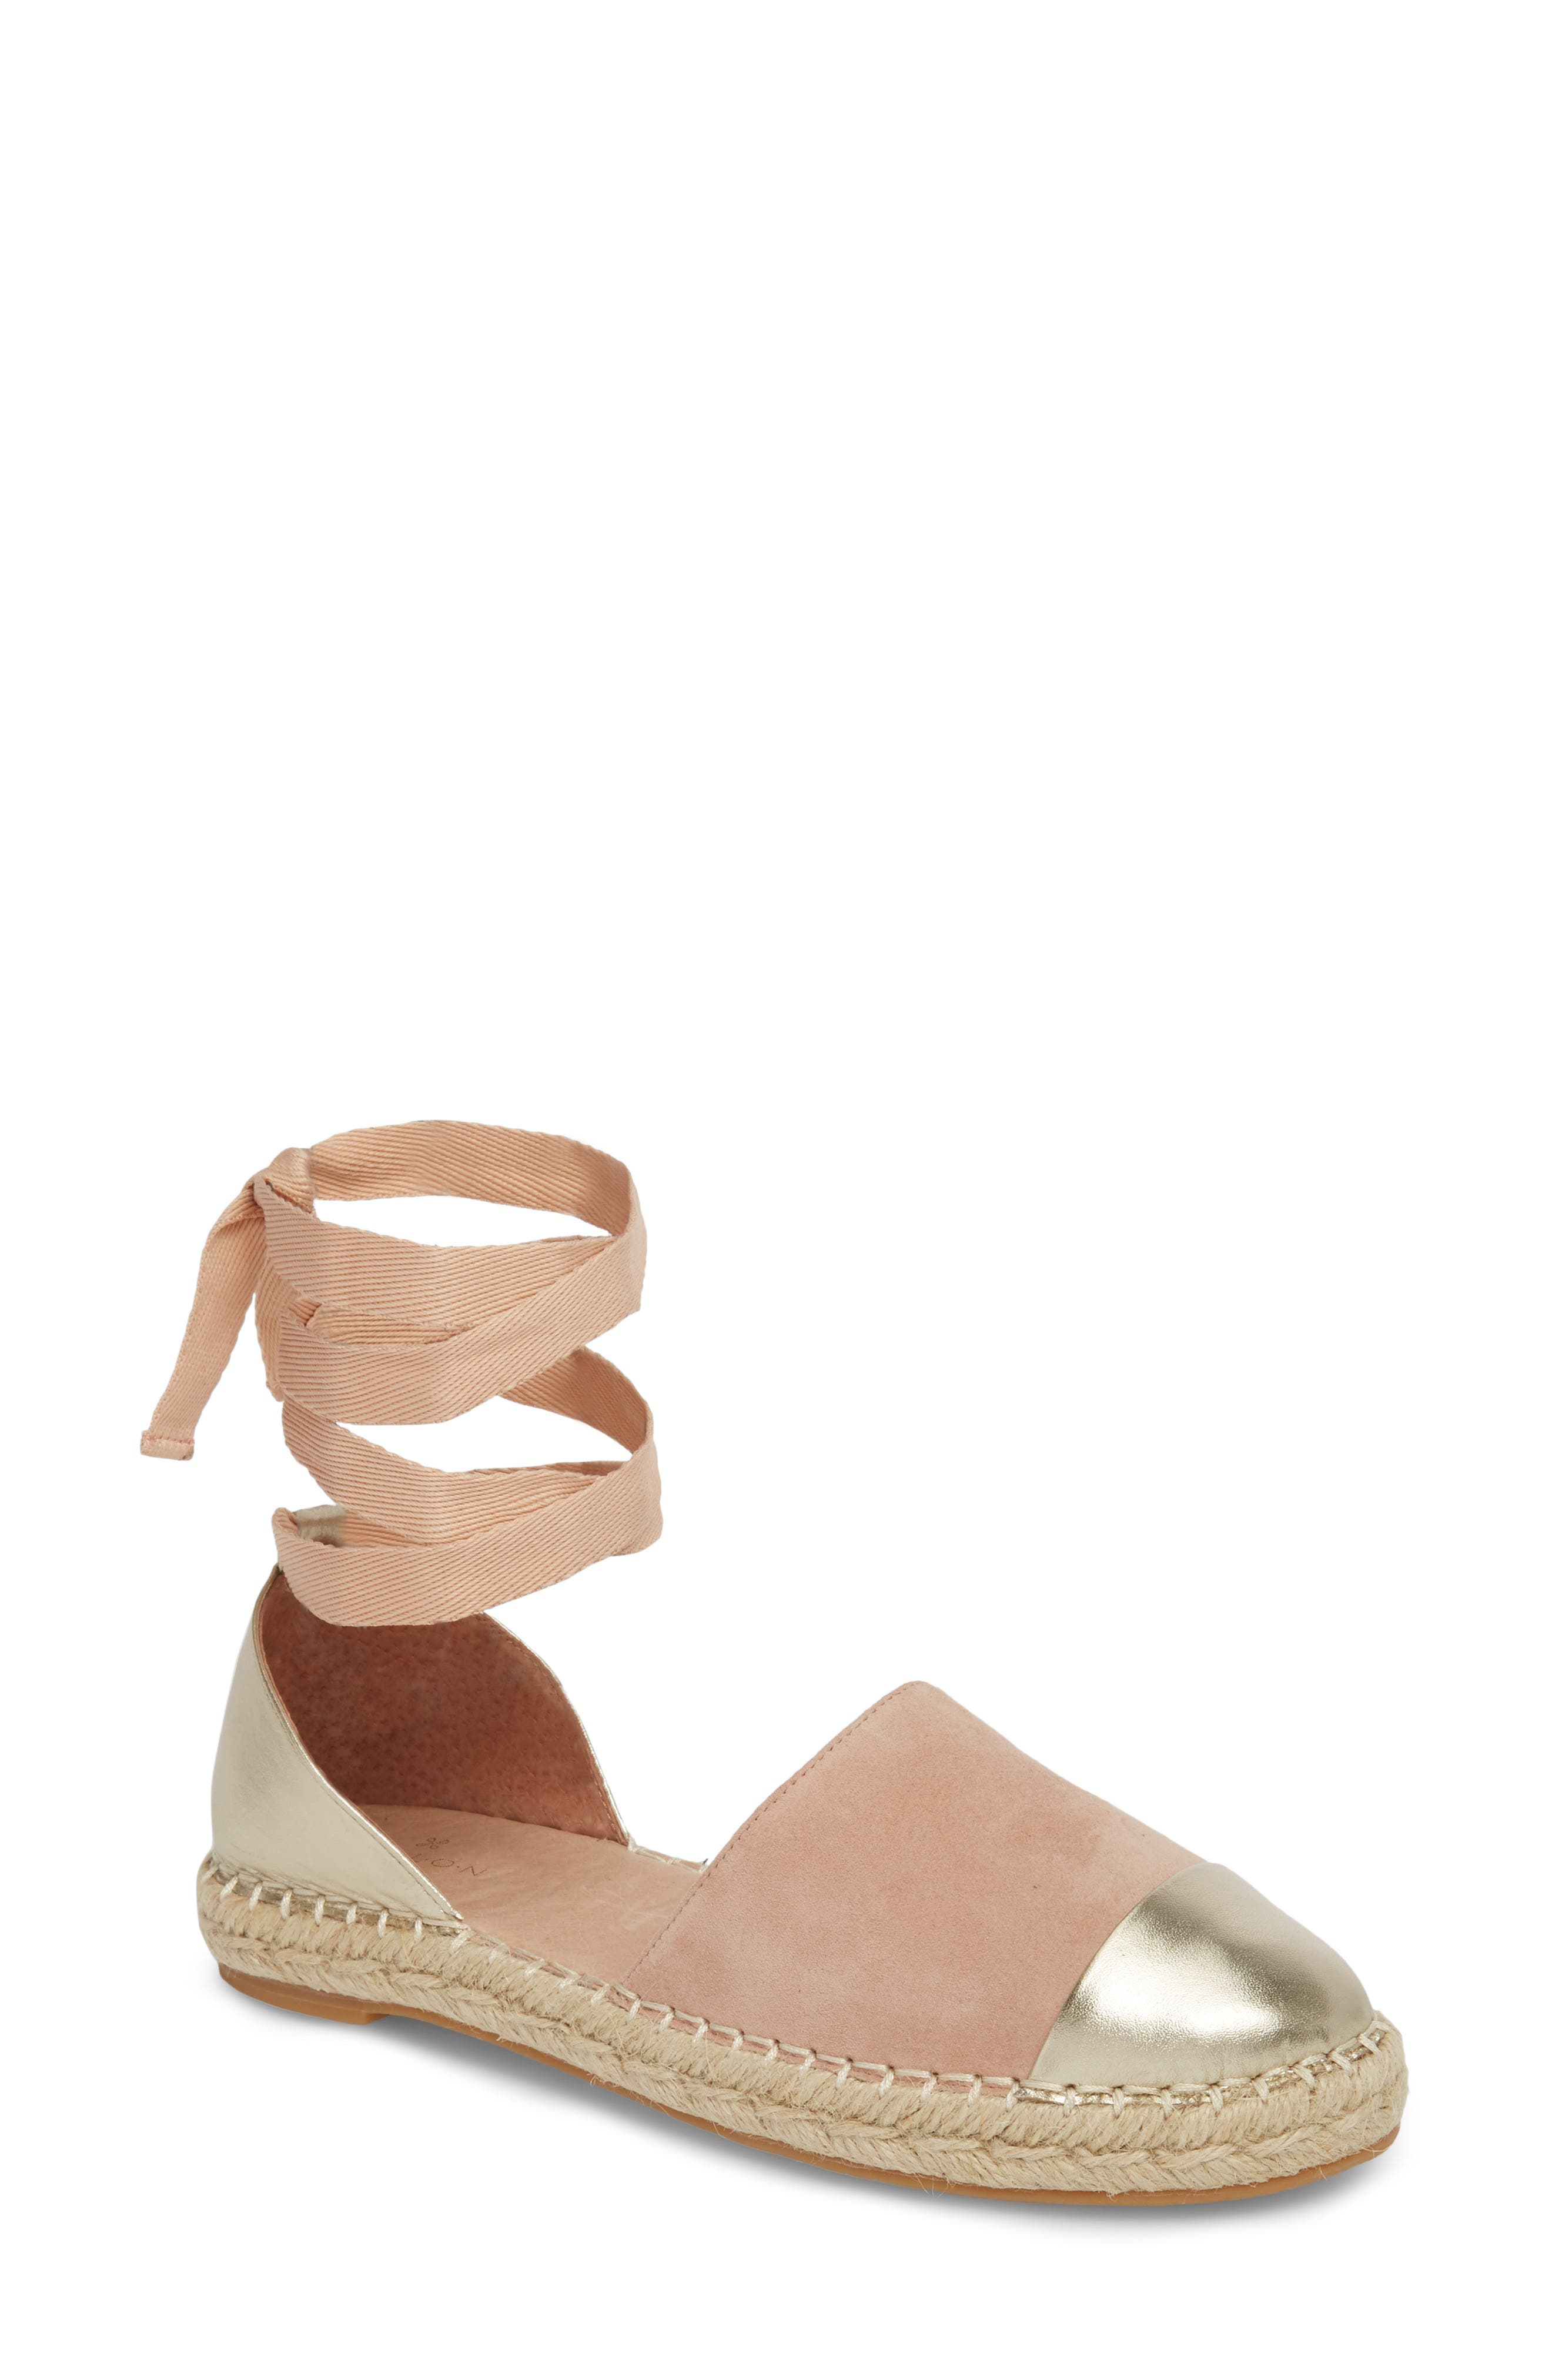 Cain Ankle-Tie Sandal,                             Main thumbnail 1, color,                             Nude Suede/ Gold Leather